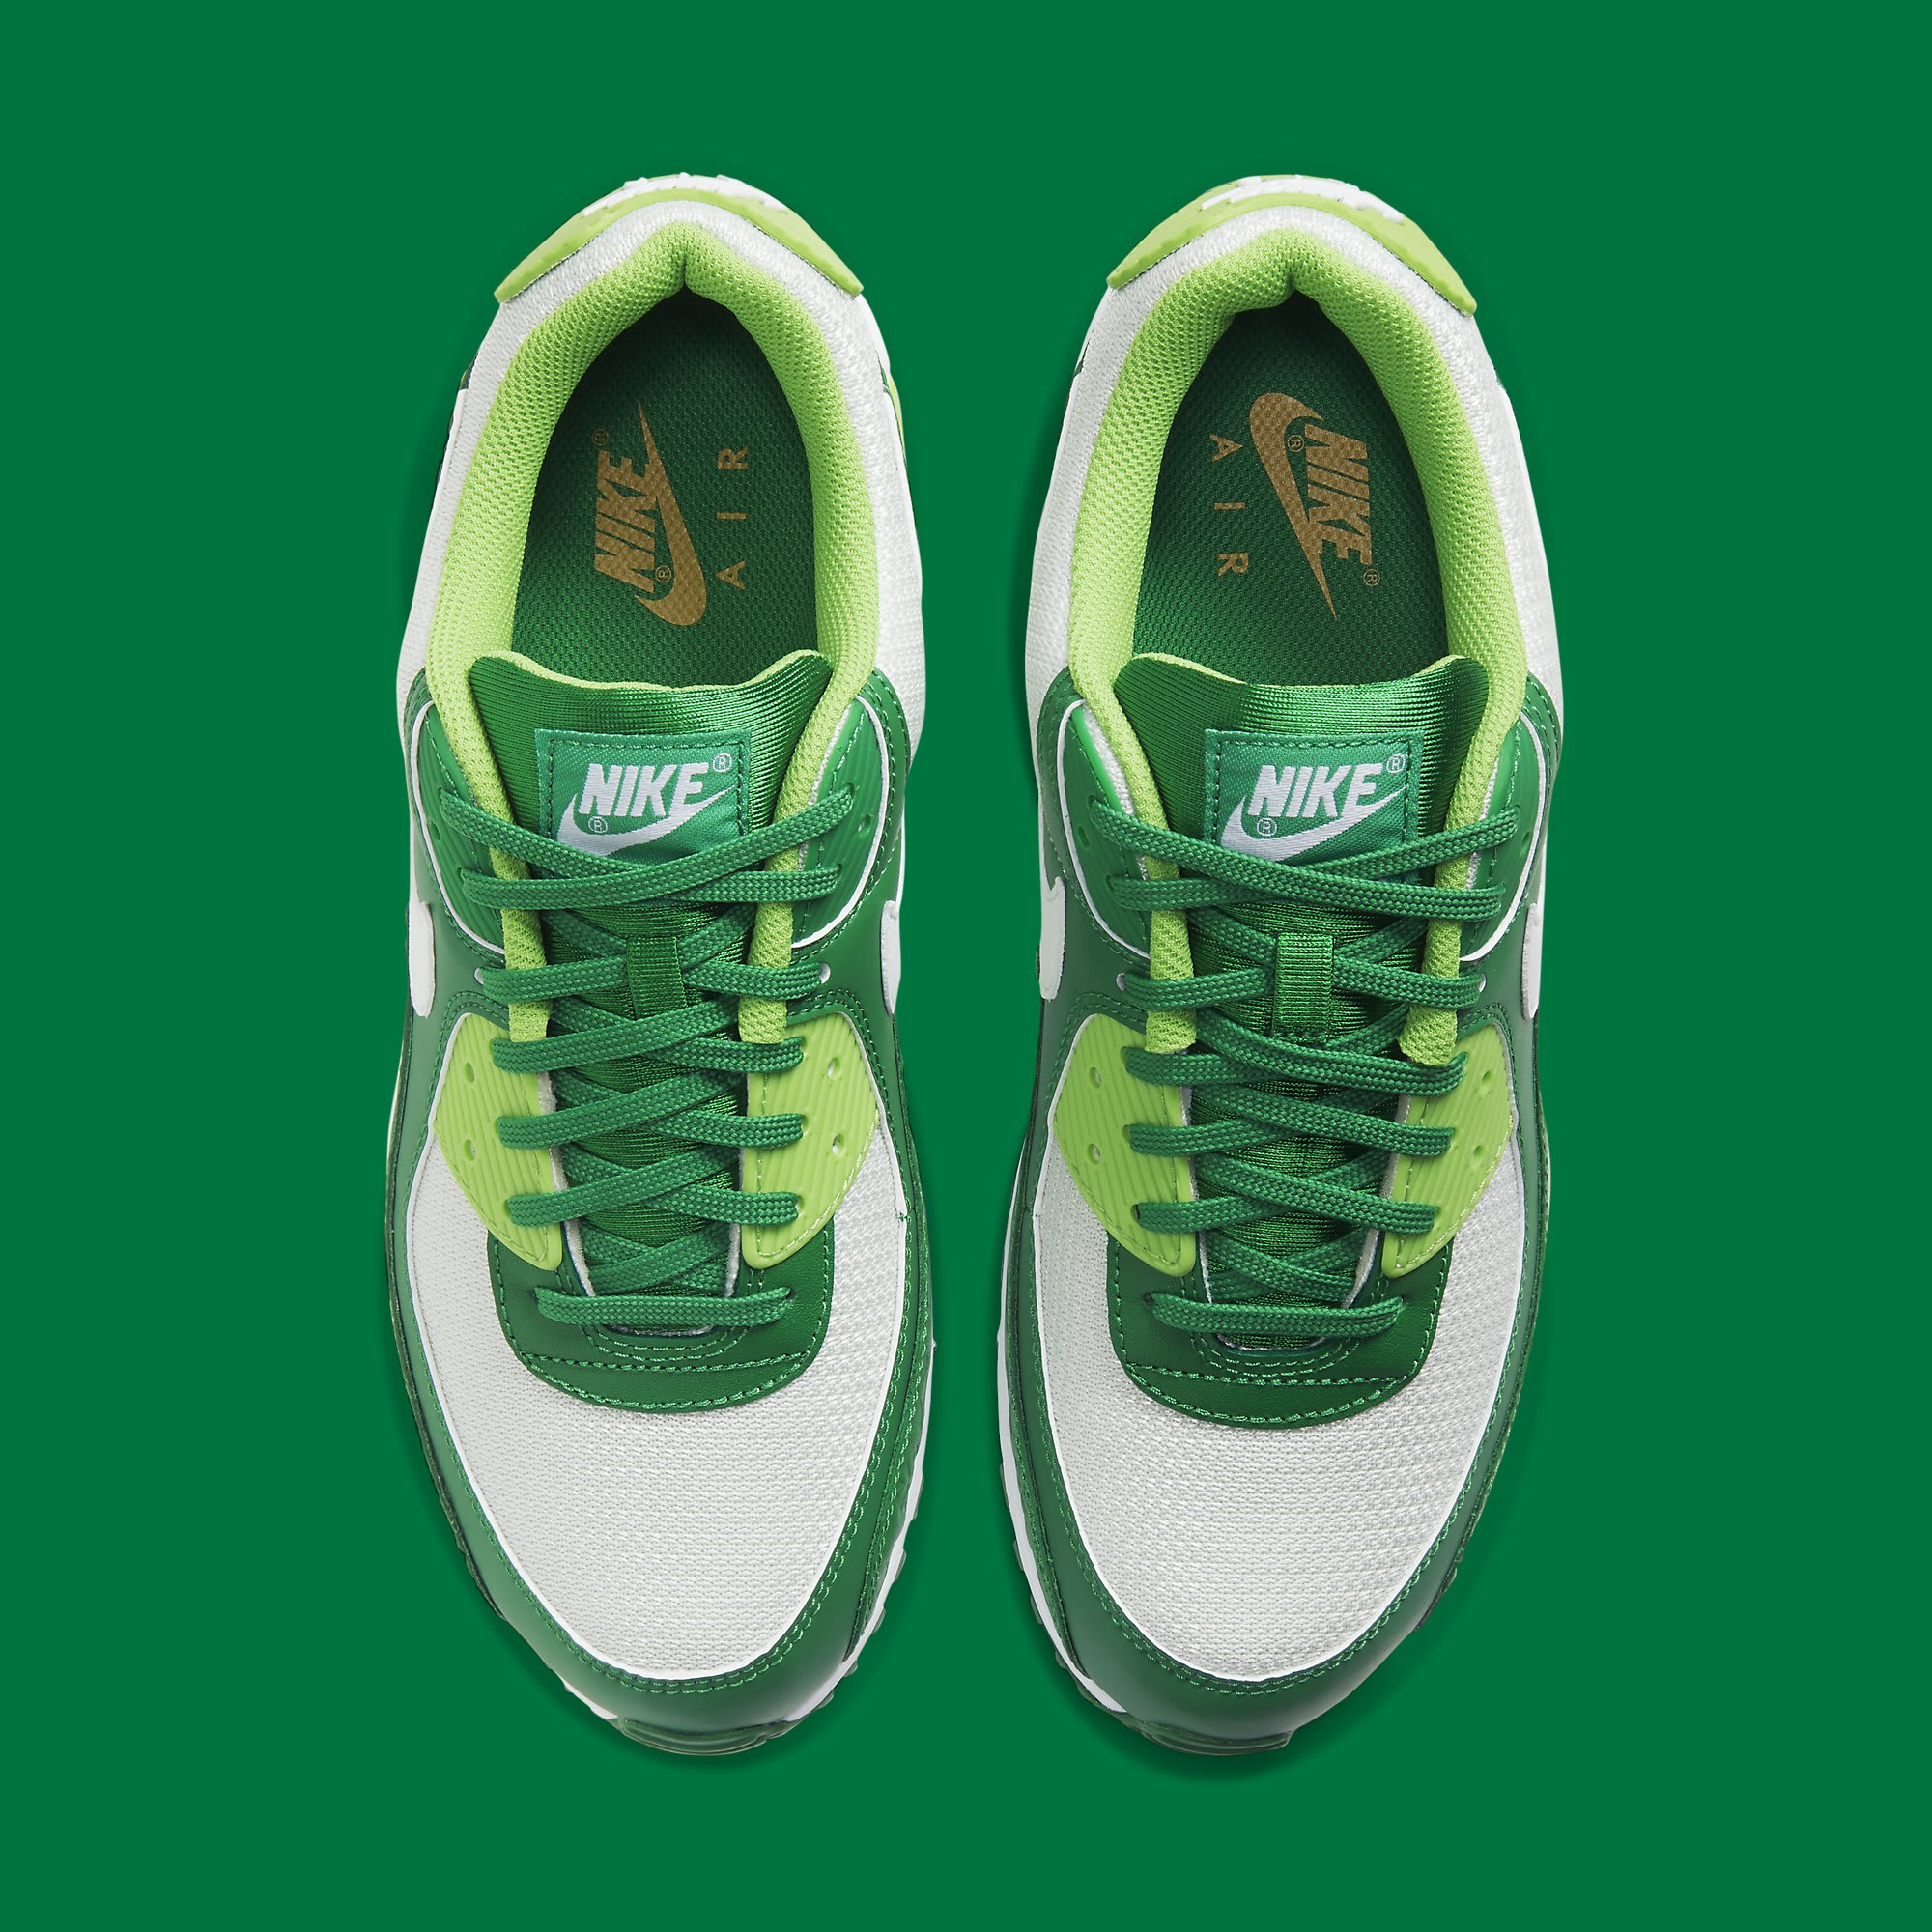 Nike Air Max 90 St. Patrick's Day Release Date DD8555-300 Top